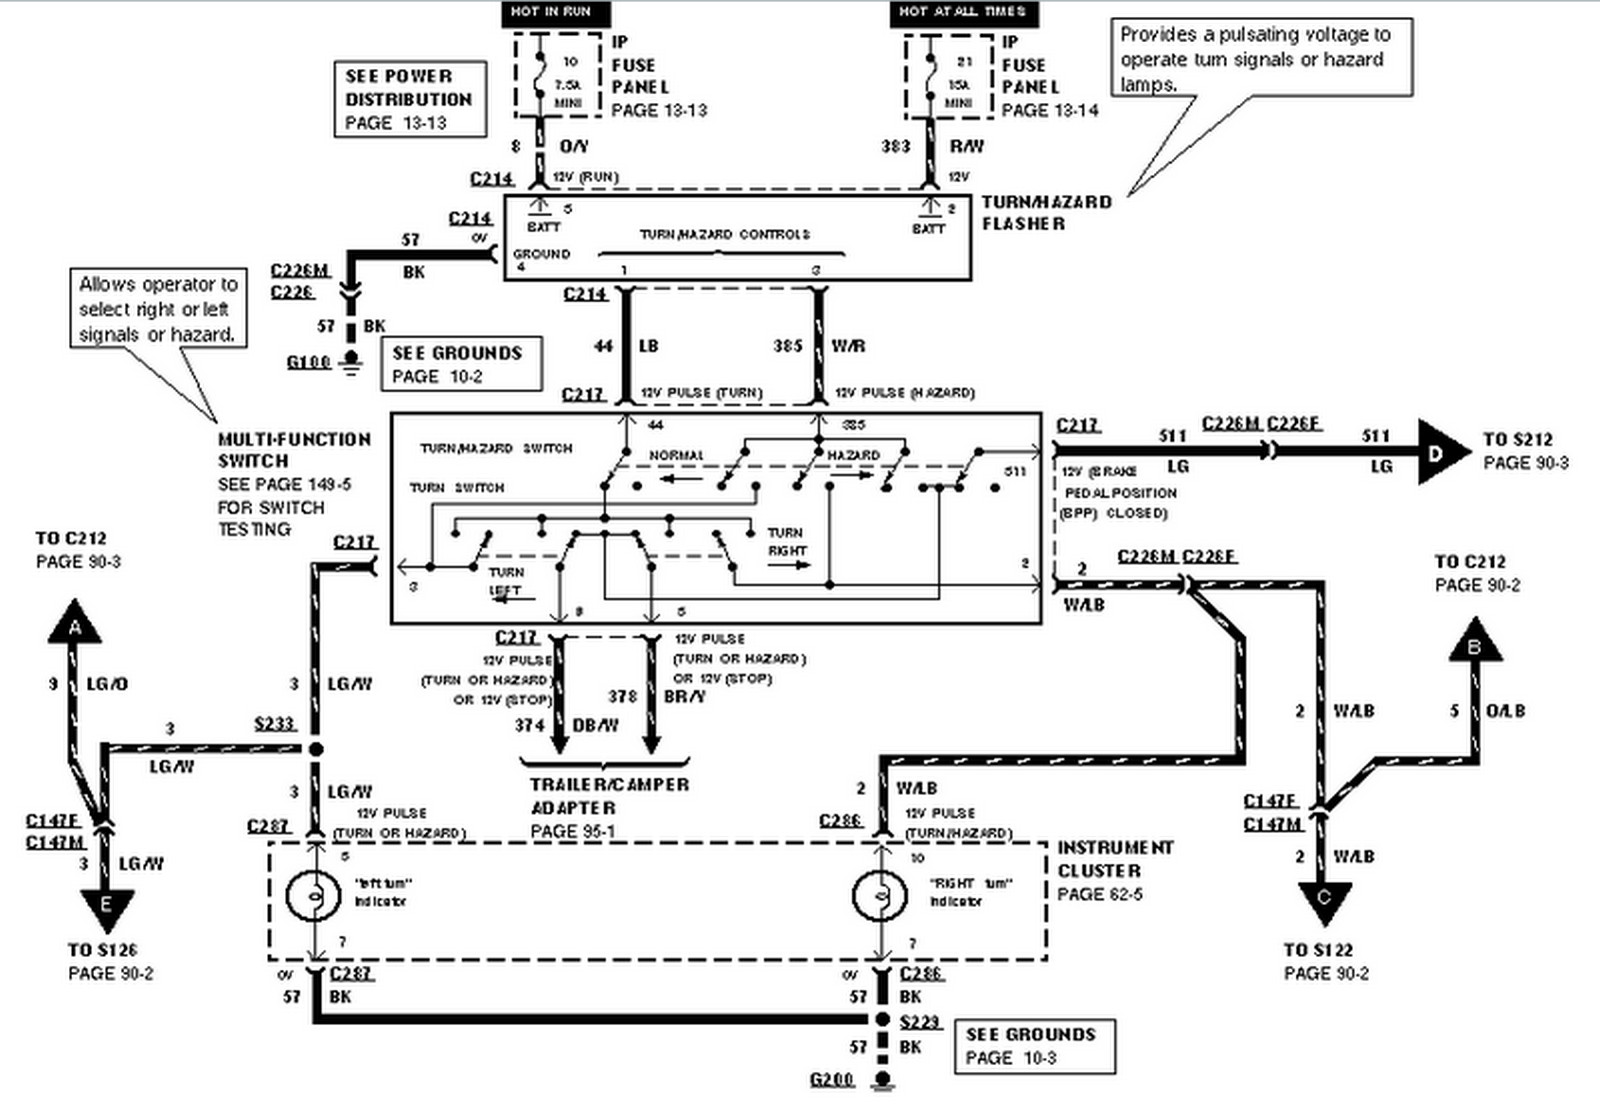 model t ford forum model t ford wiring diagrams and wire gauges Ford Explorer Wiring Schematic 60 1 wiring diagram for a model a ford the wiring diagram, wiring diagram 2004 Ford Explorer Wiring Schematic